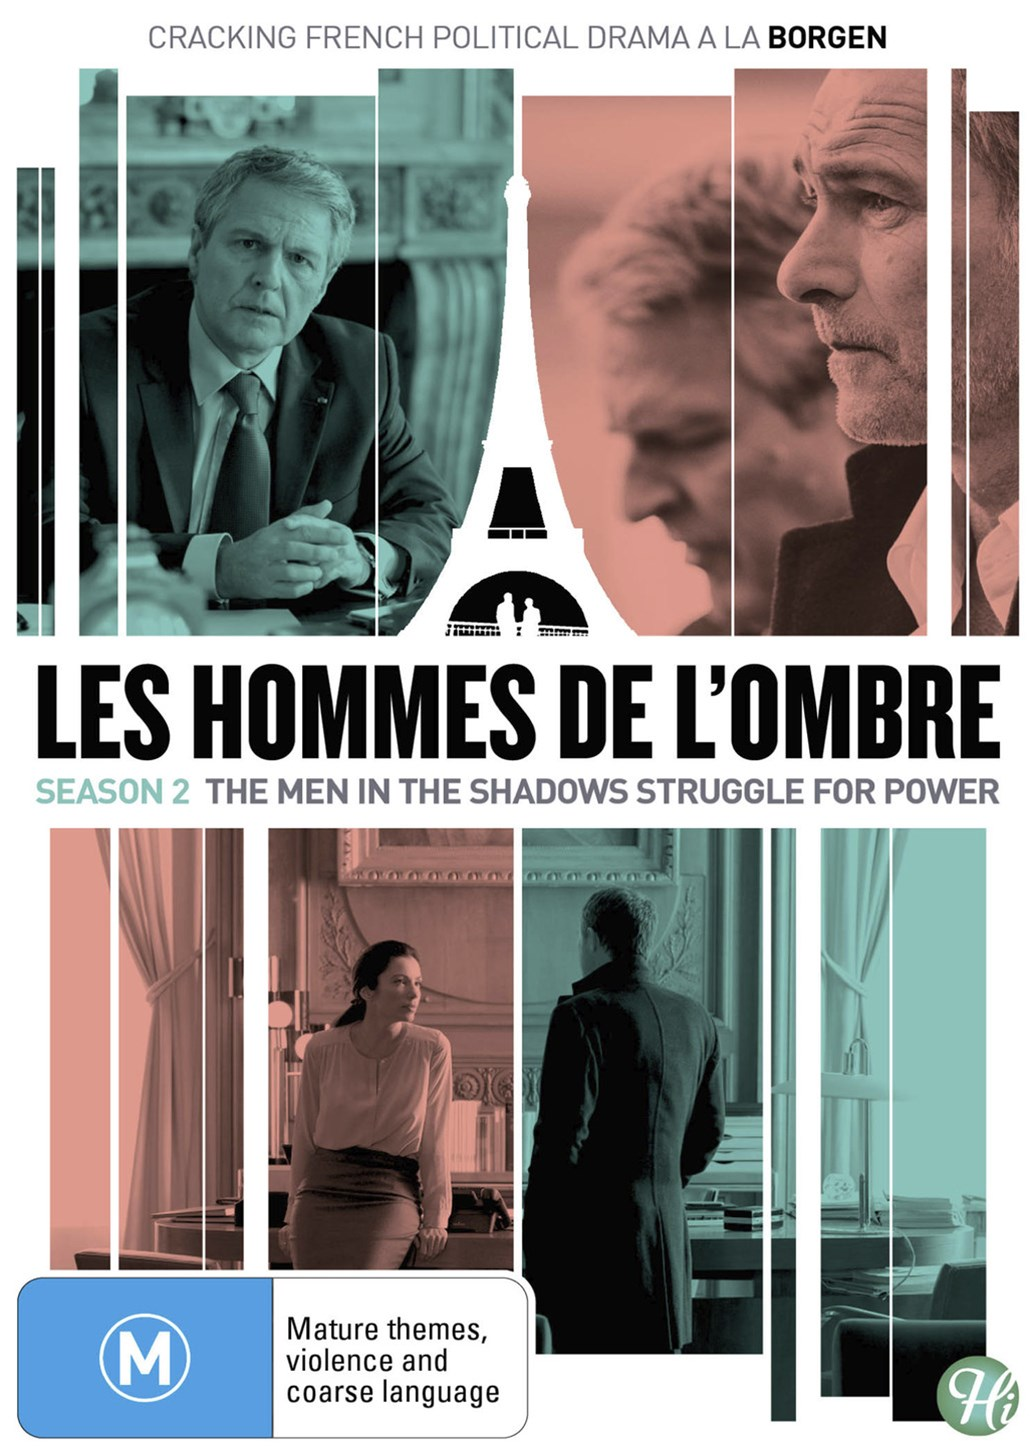 Les Hommes De L'ombre (The Shadow Men): Season 2